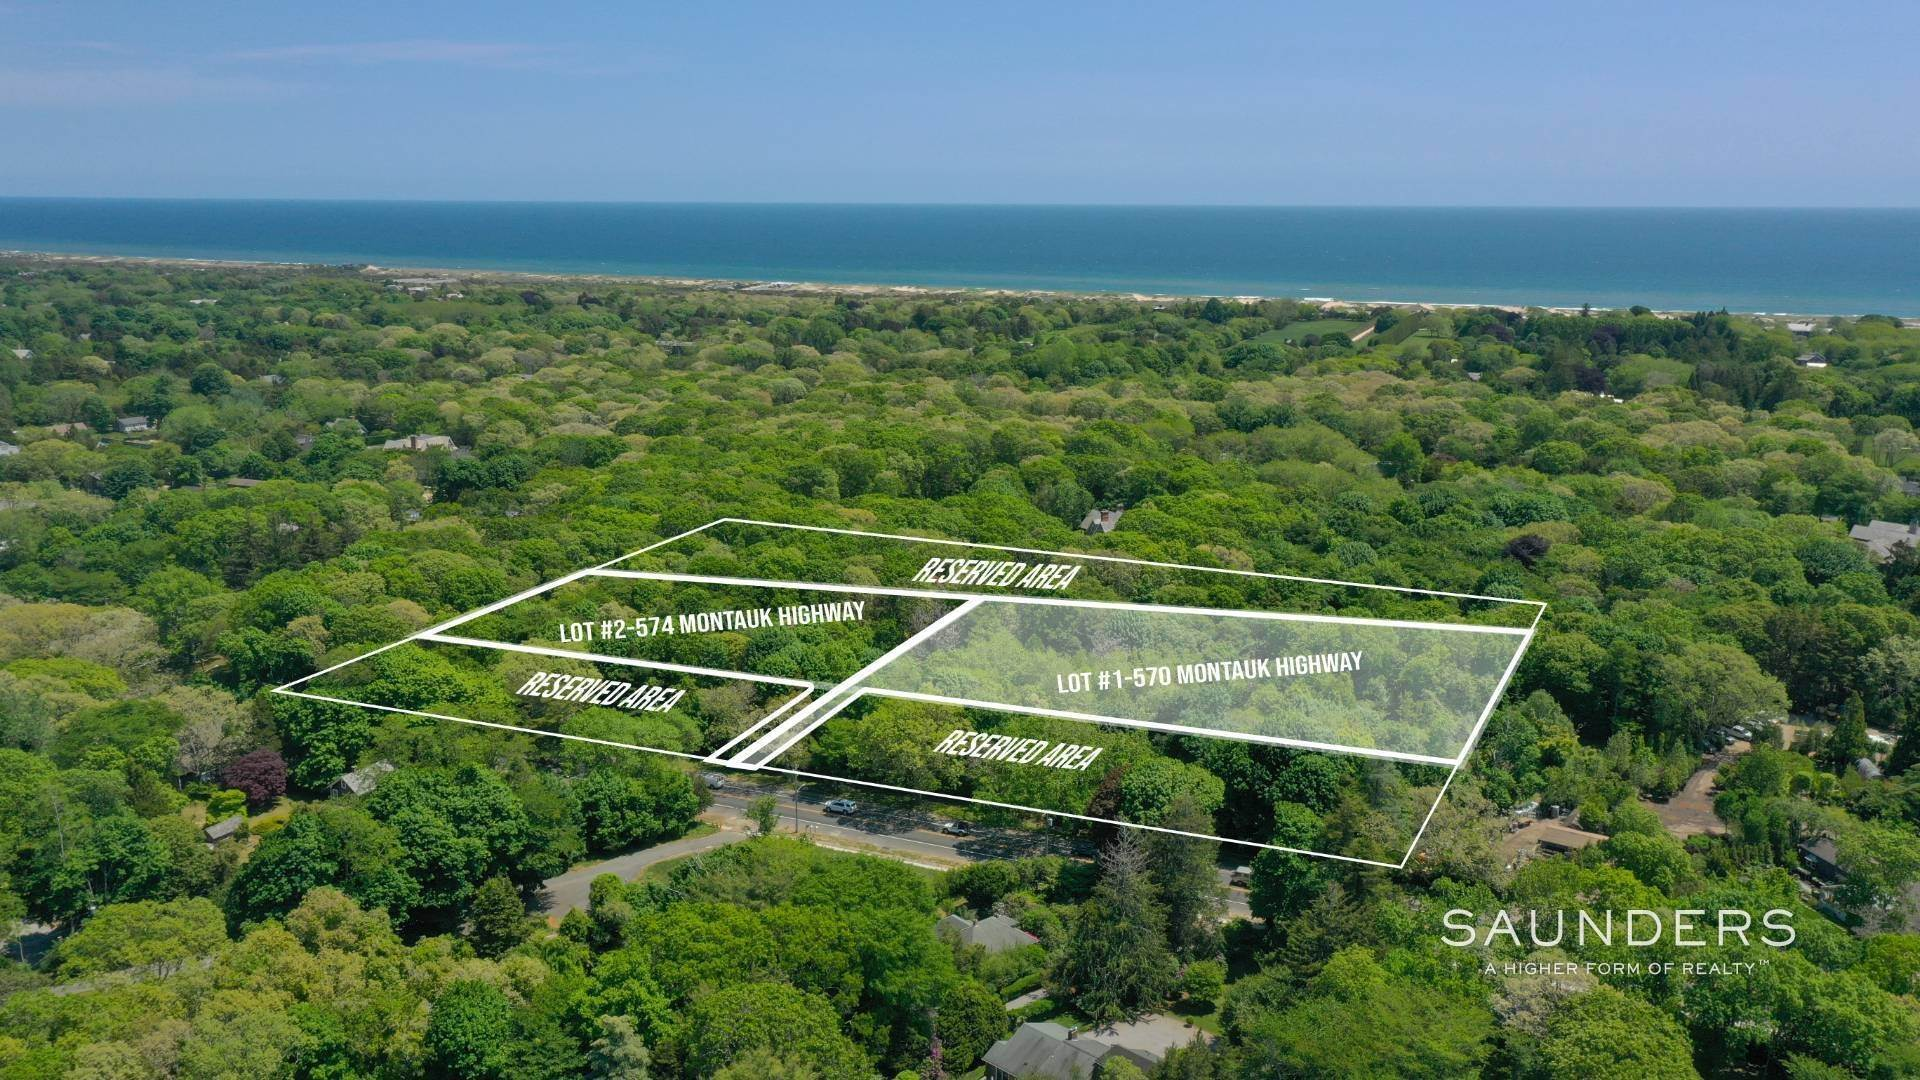 Land for Sale at Build South Of The Highway 574 Montauk Highway, Amagansett, East Hampton Town, NY 11937